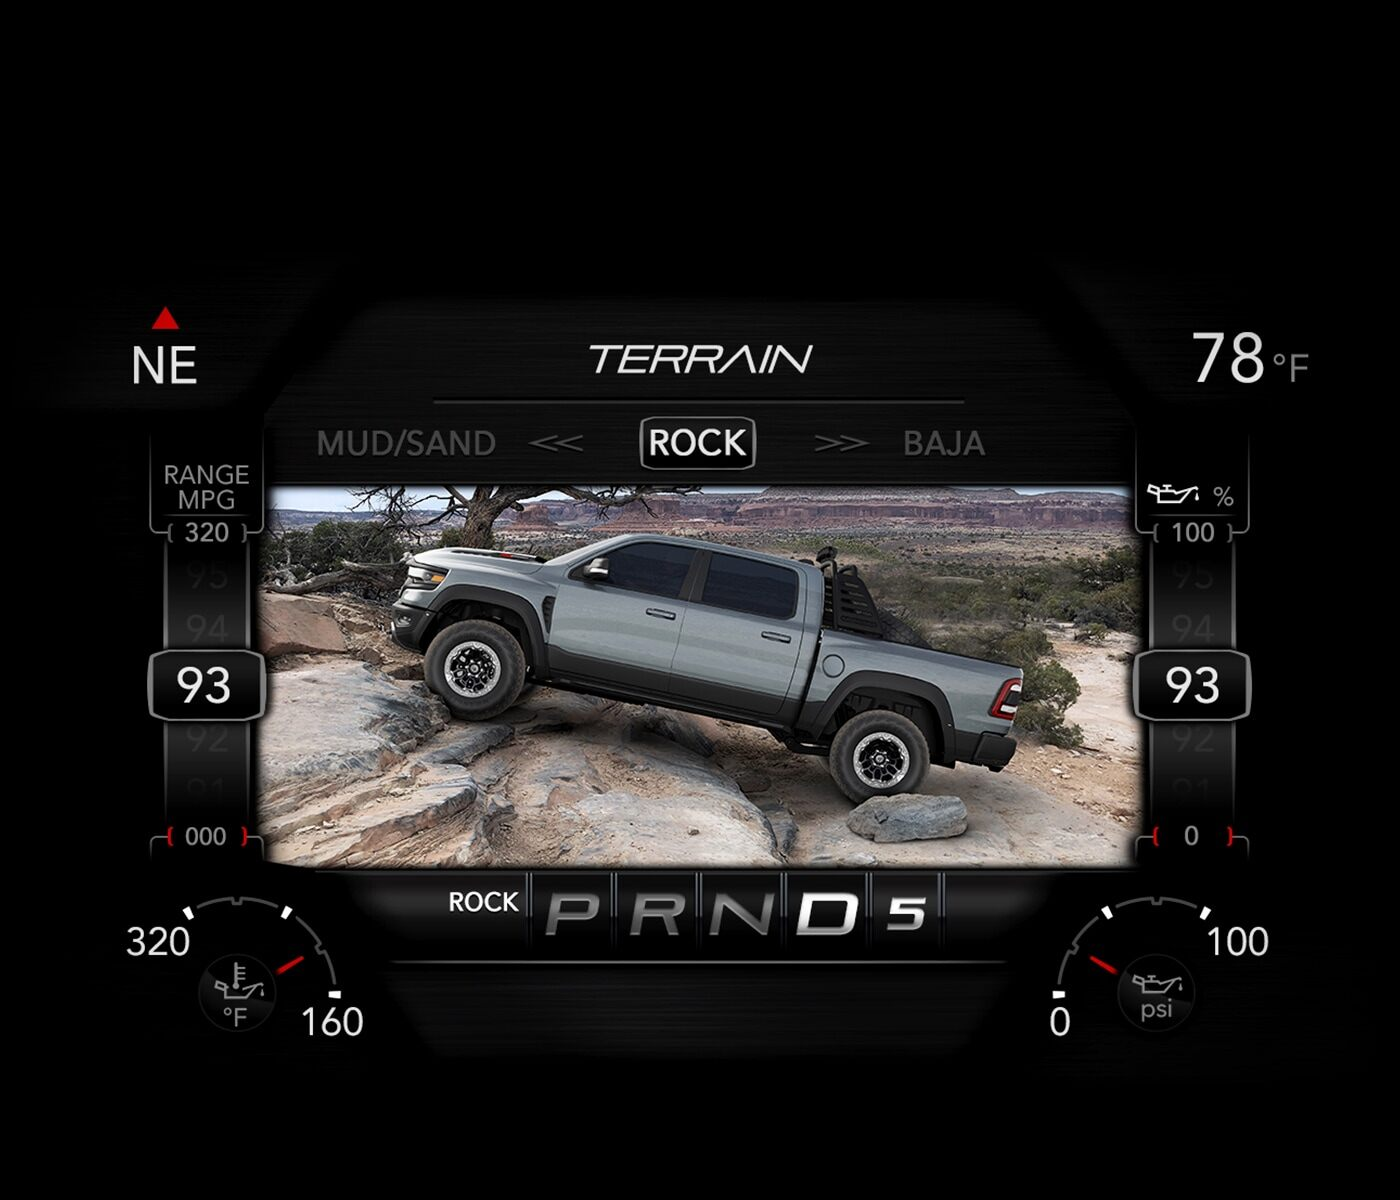 A close-up of the digital cluster display on the 2021 Ram 1500 TRX displaying the settings for the Rock Mode.